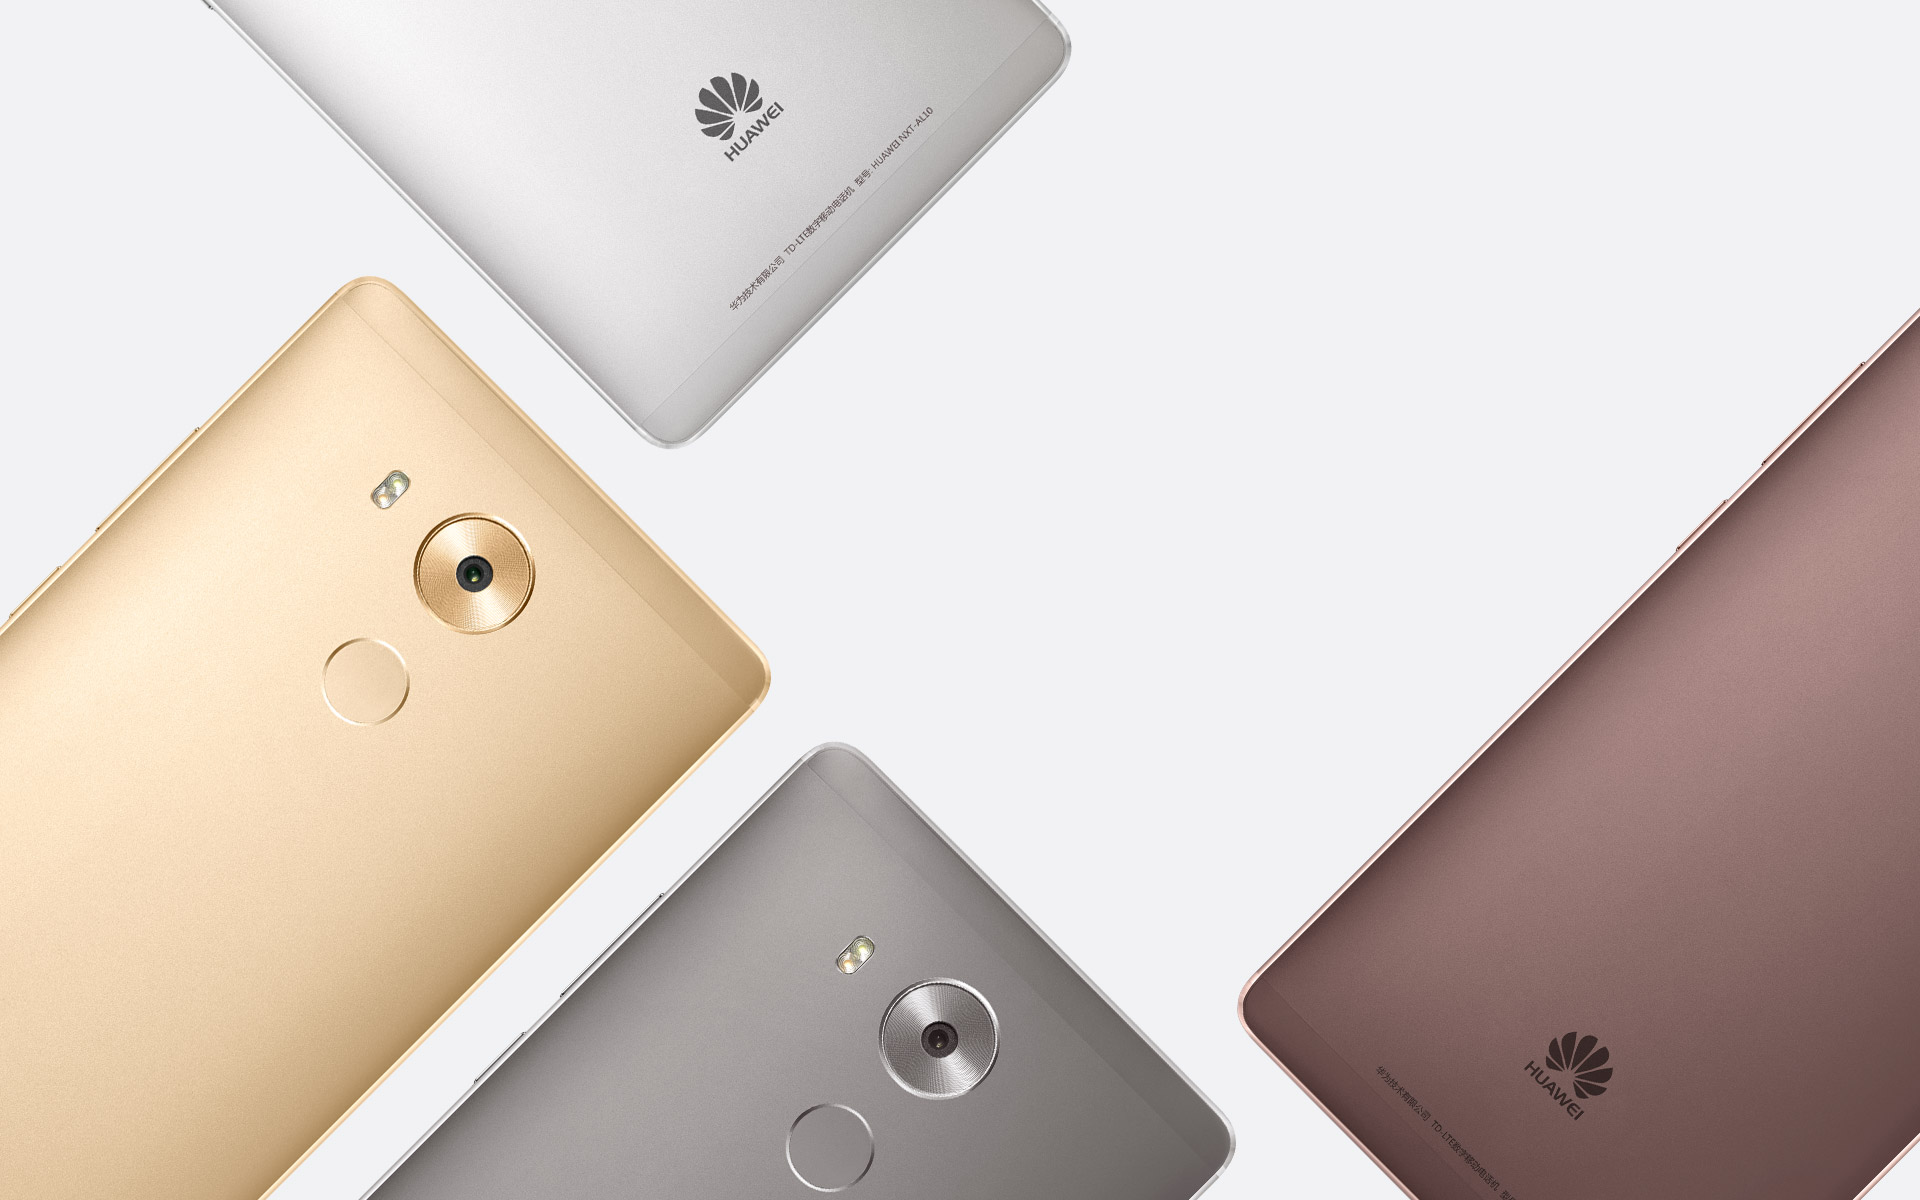 Huawei-Mate-8-official-images (14)